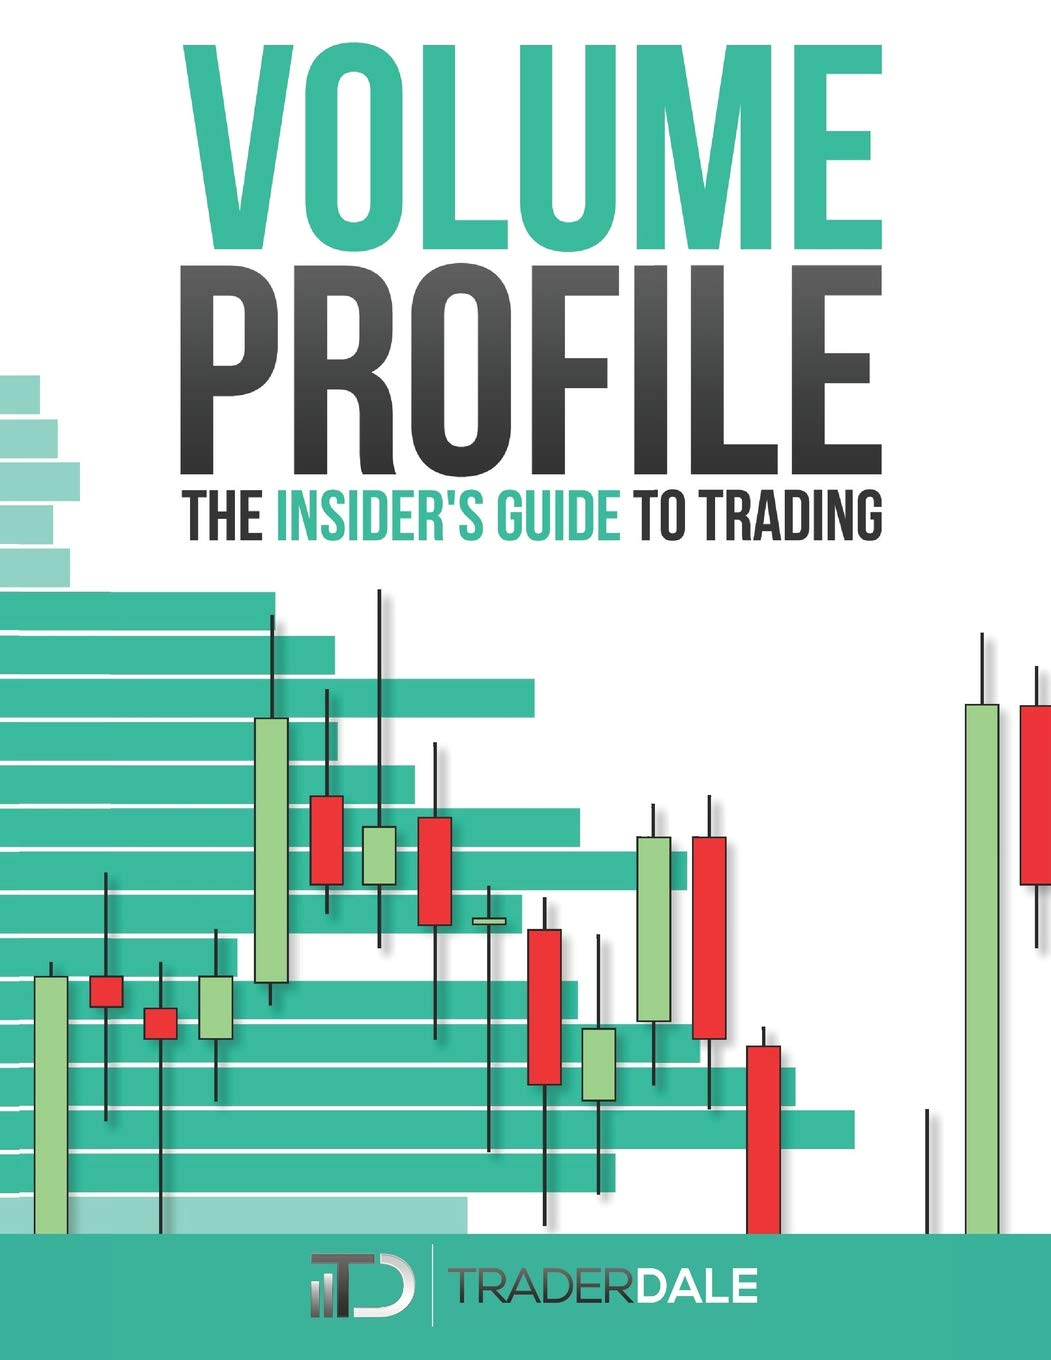 VOLUME PROFILE: The insider's guide to trading: Trader Dale